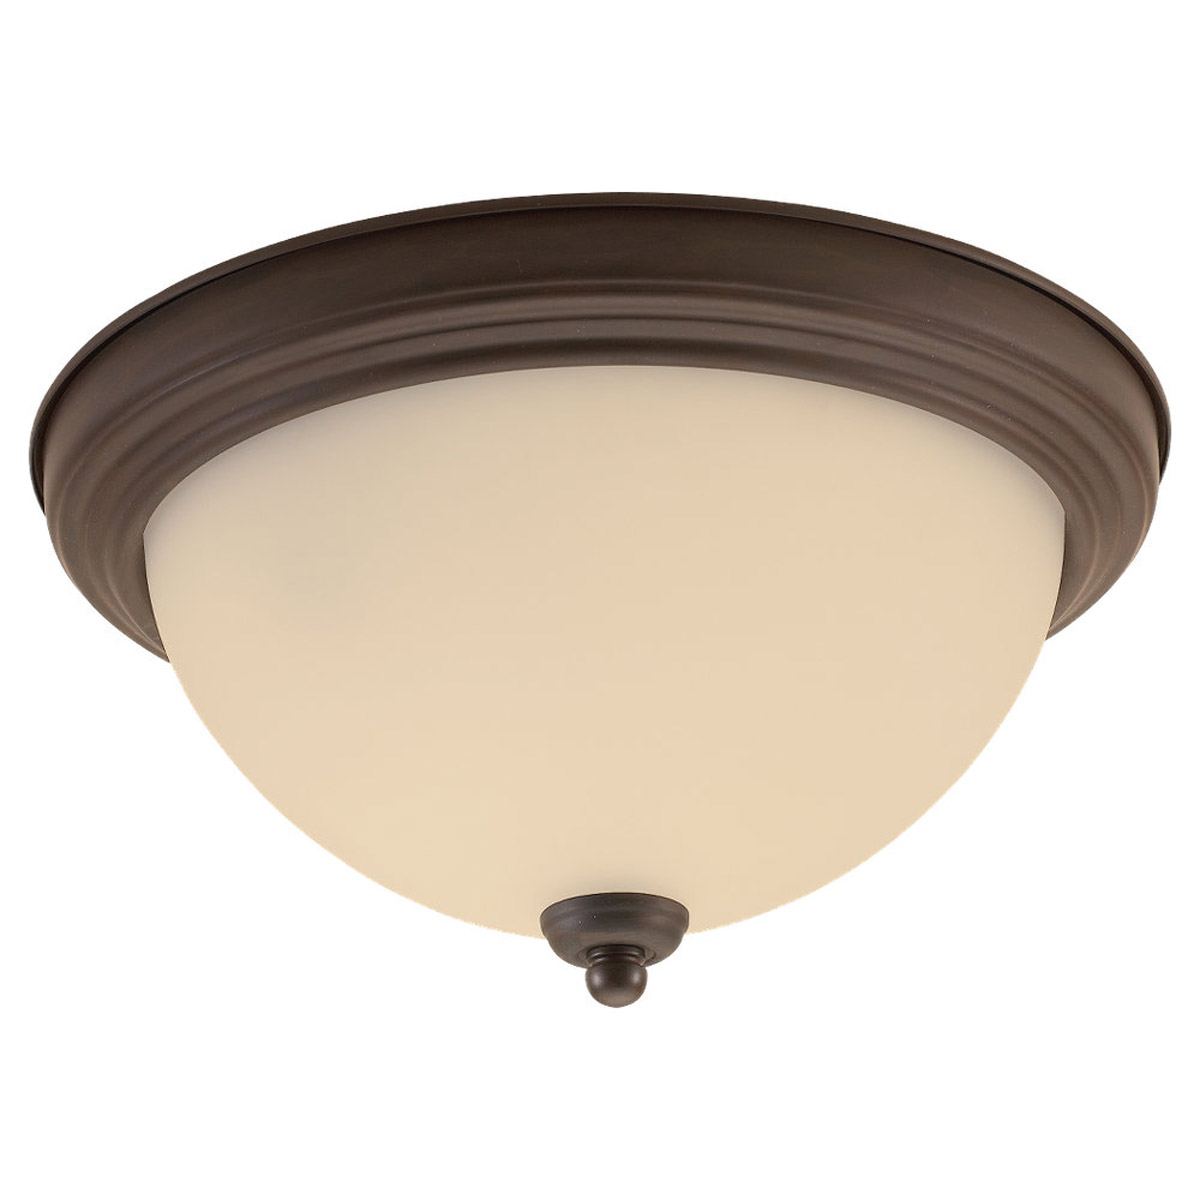 Sea Gull Lighting Montclaire 3 Light Flush Mount in Olde Iron 77065-72 photo